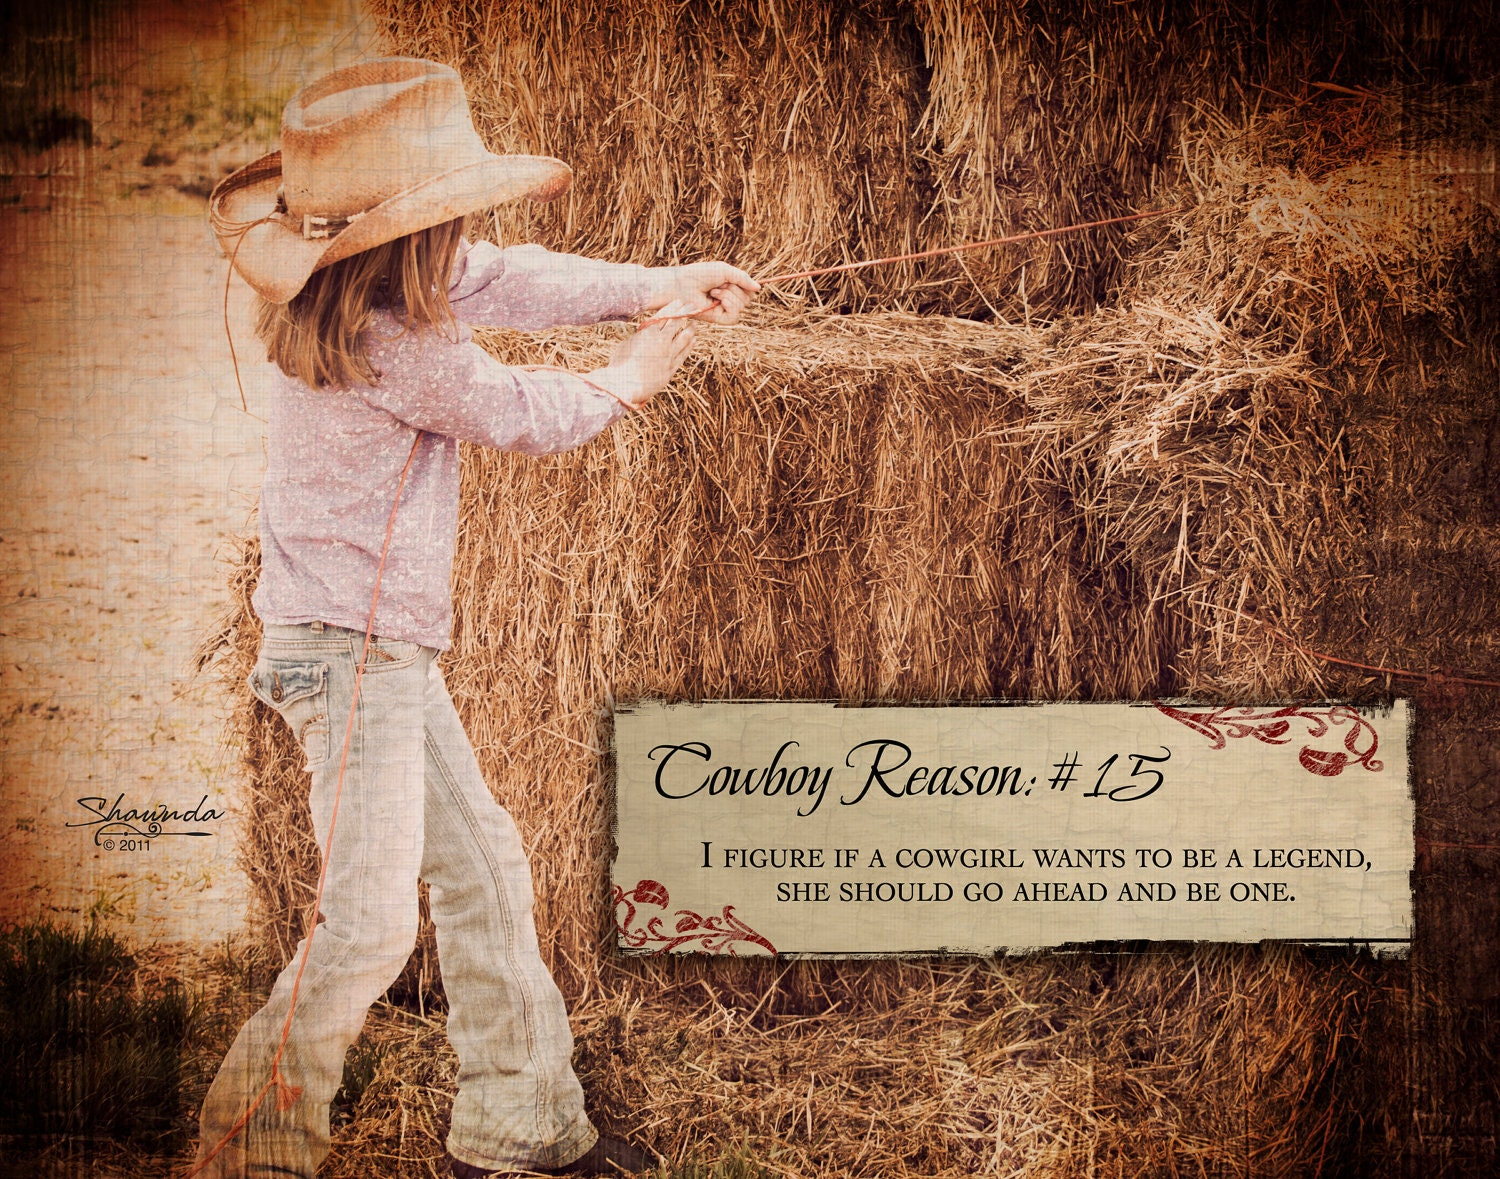 Quotes About Cowboys And Cowgirls In Love Cowboy reason 15 cowgirlQuotes About Cowboys And Cowgirls In Love